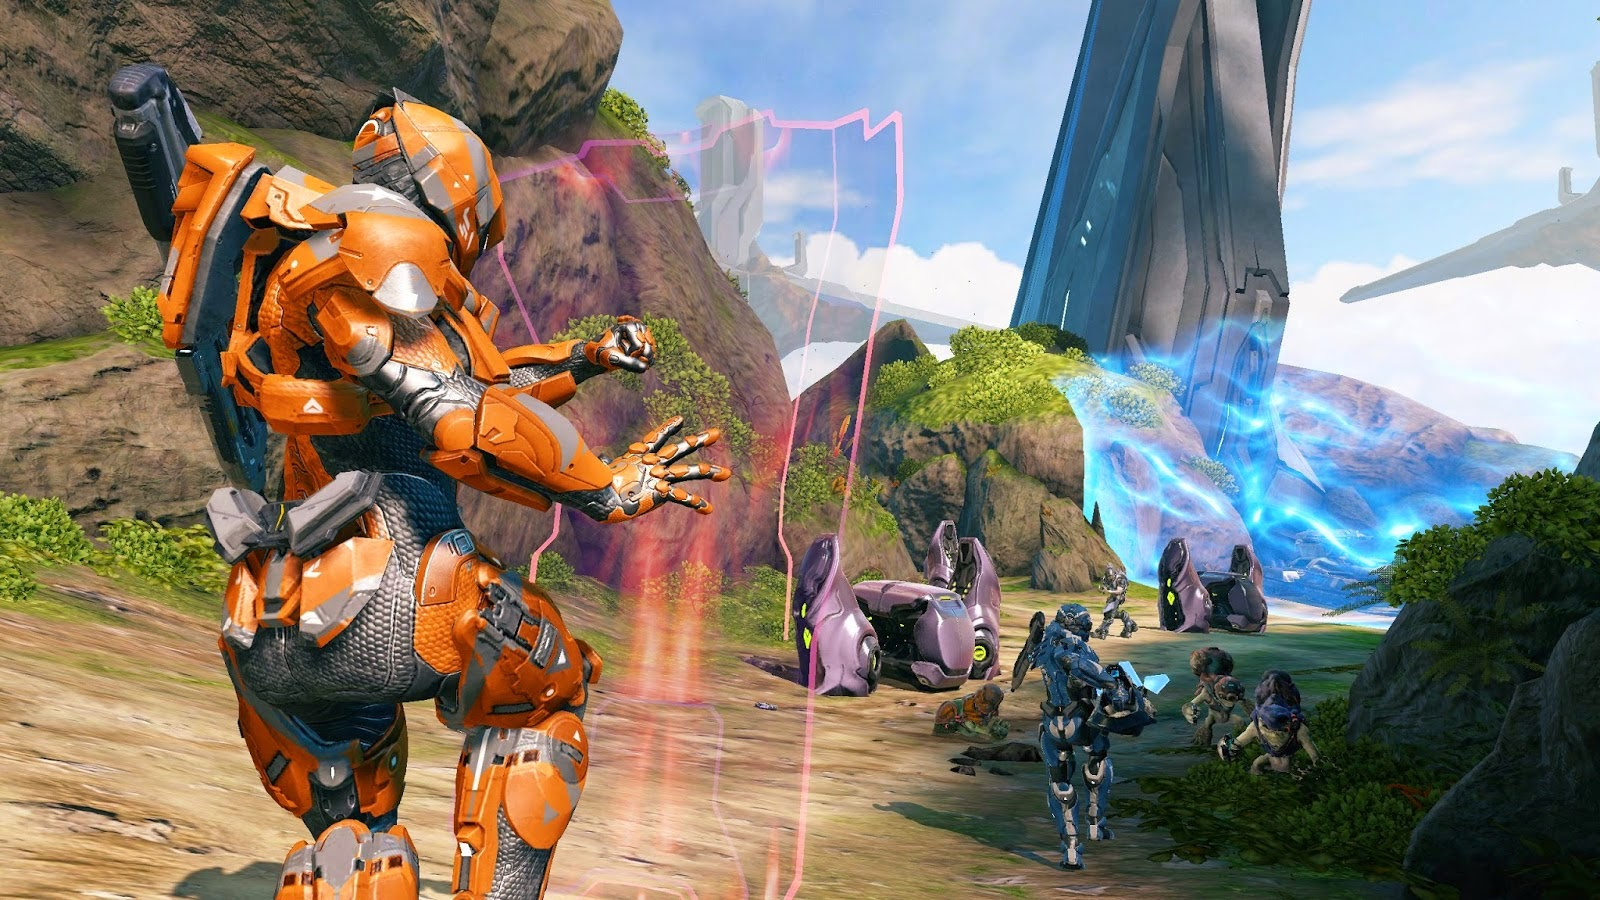 Halo Spartan Strike PC Game Free Download - Free Audio songs And PC